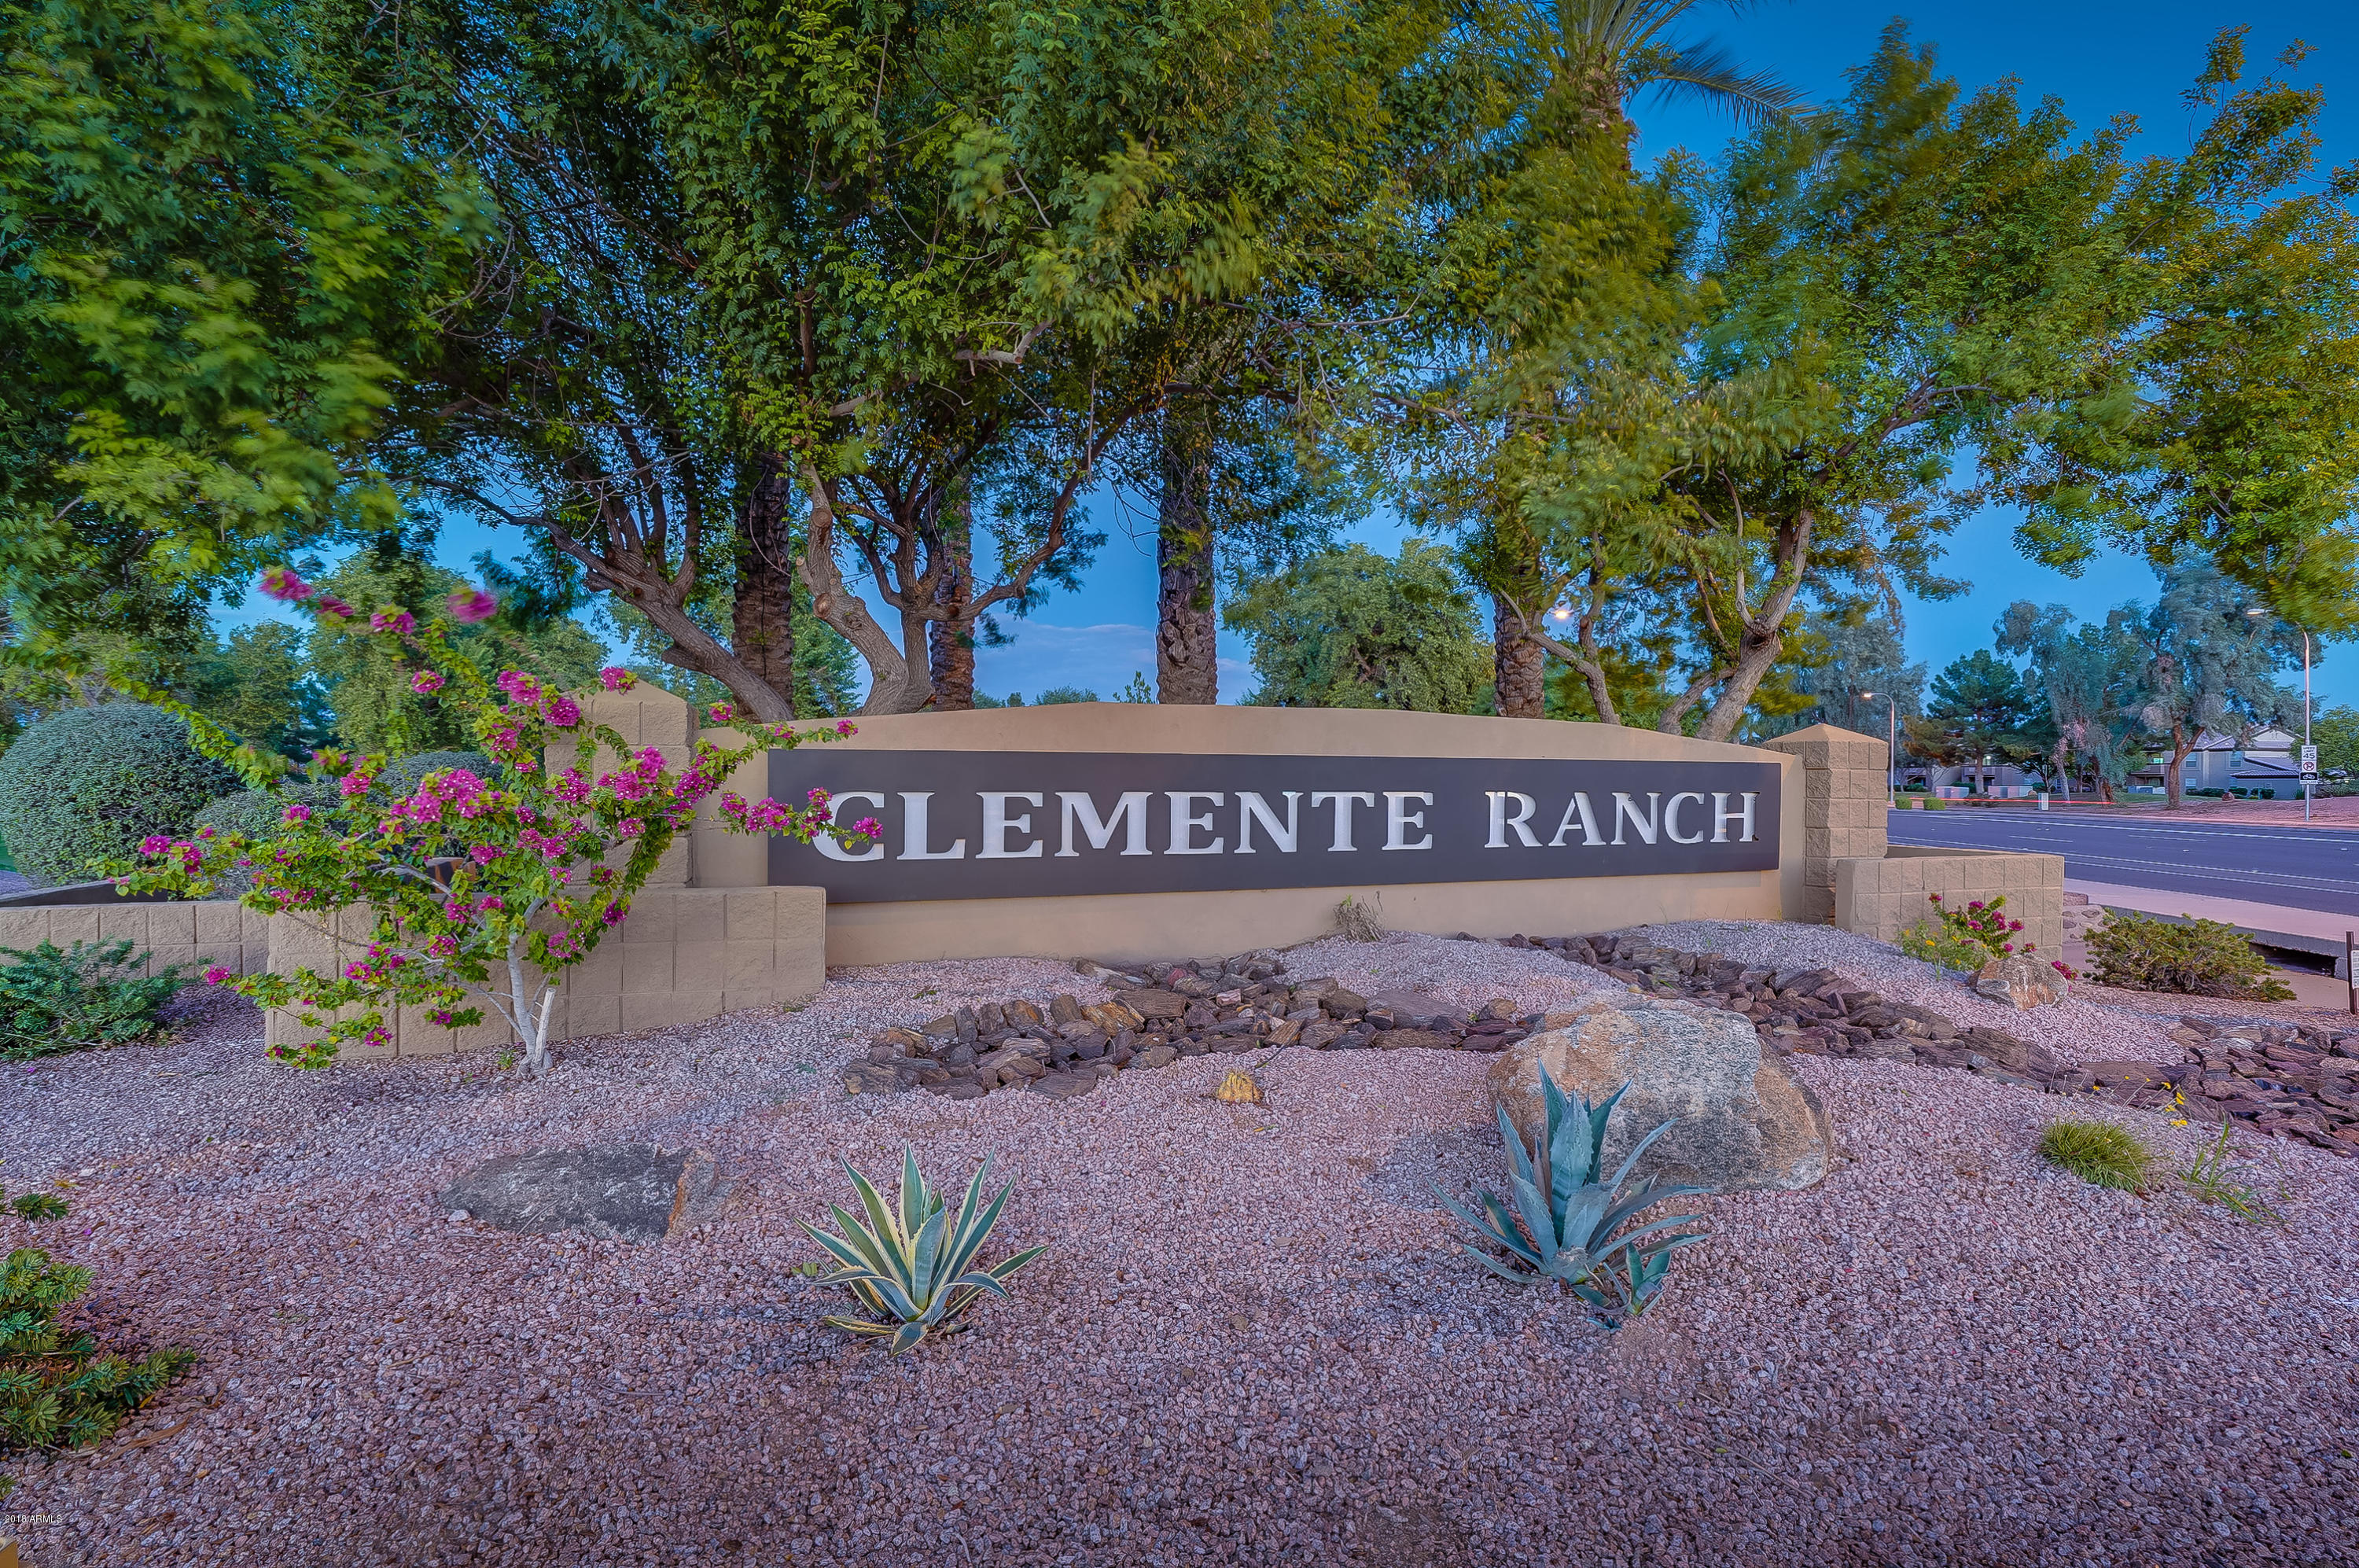 MLS 5824722 1374 W ORIOLE Way, Chandler, AZ 85286 Chandler AZ Clemente Ranch